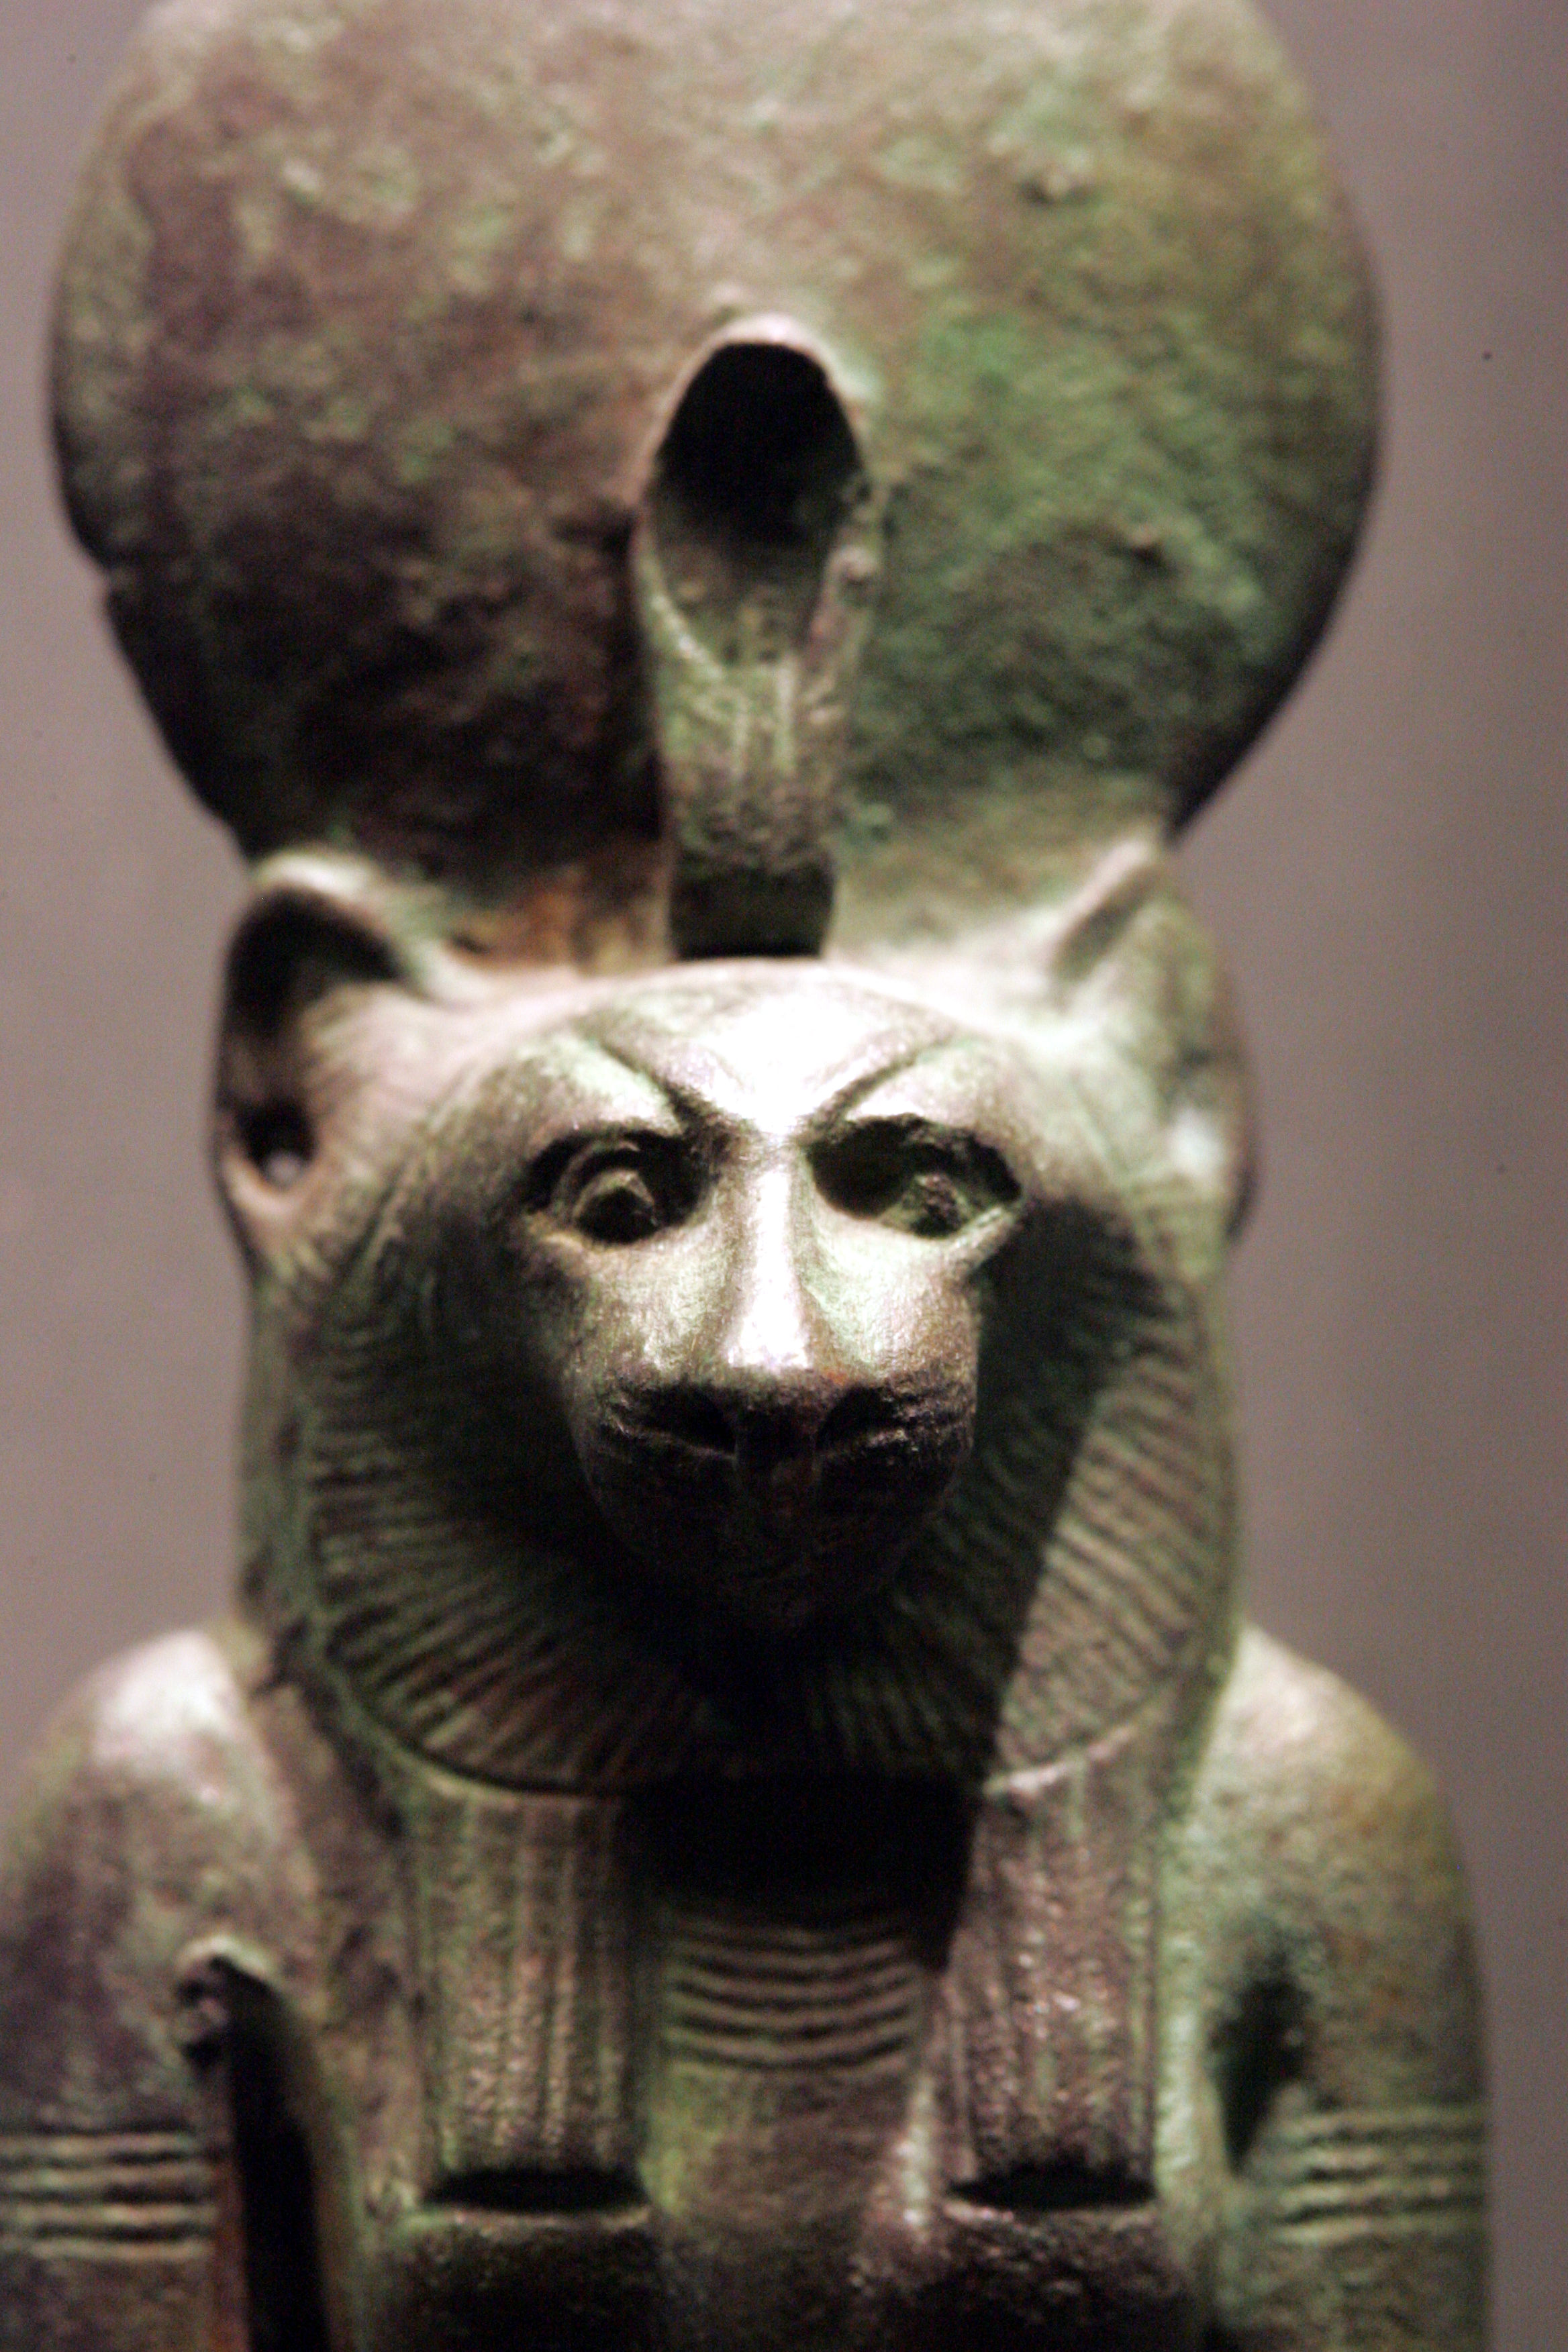 http://upload.wikimedia.org/wikipedia/commons/9/9a/Wadjet_N5139_mp3h8831.jpg